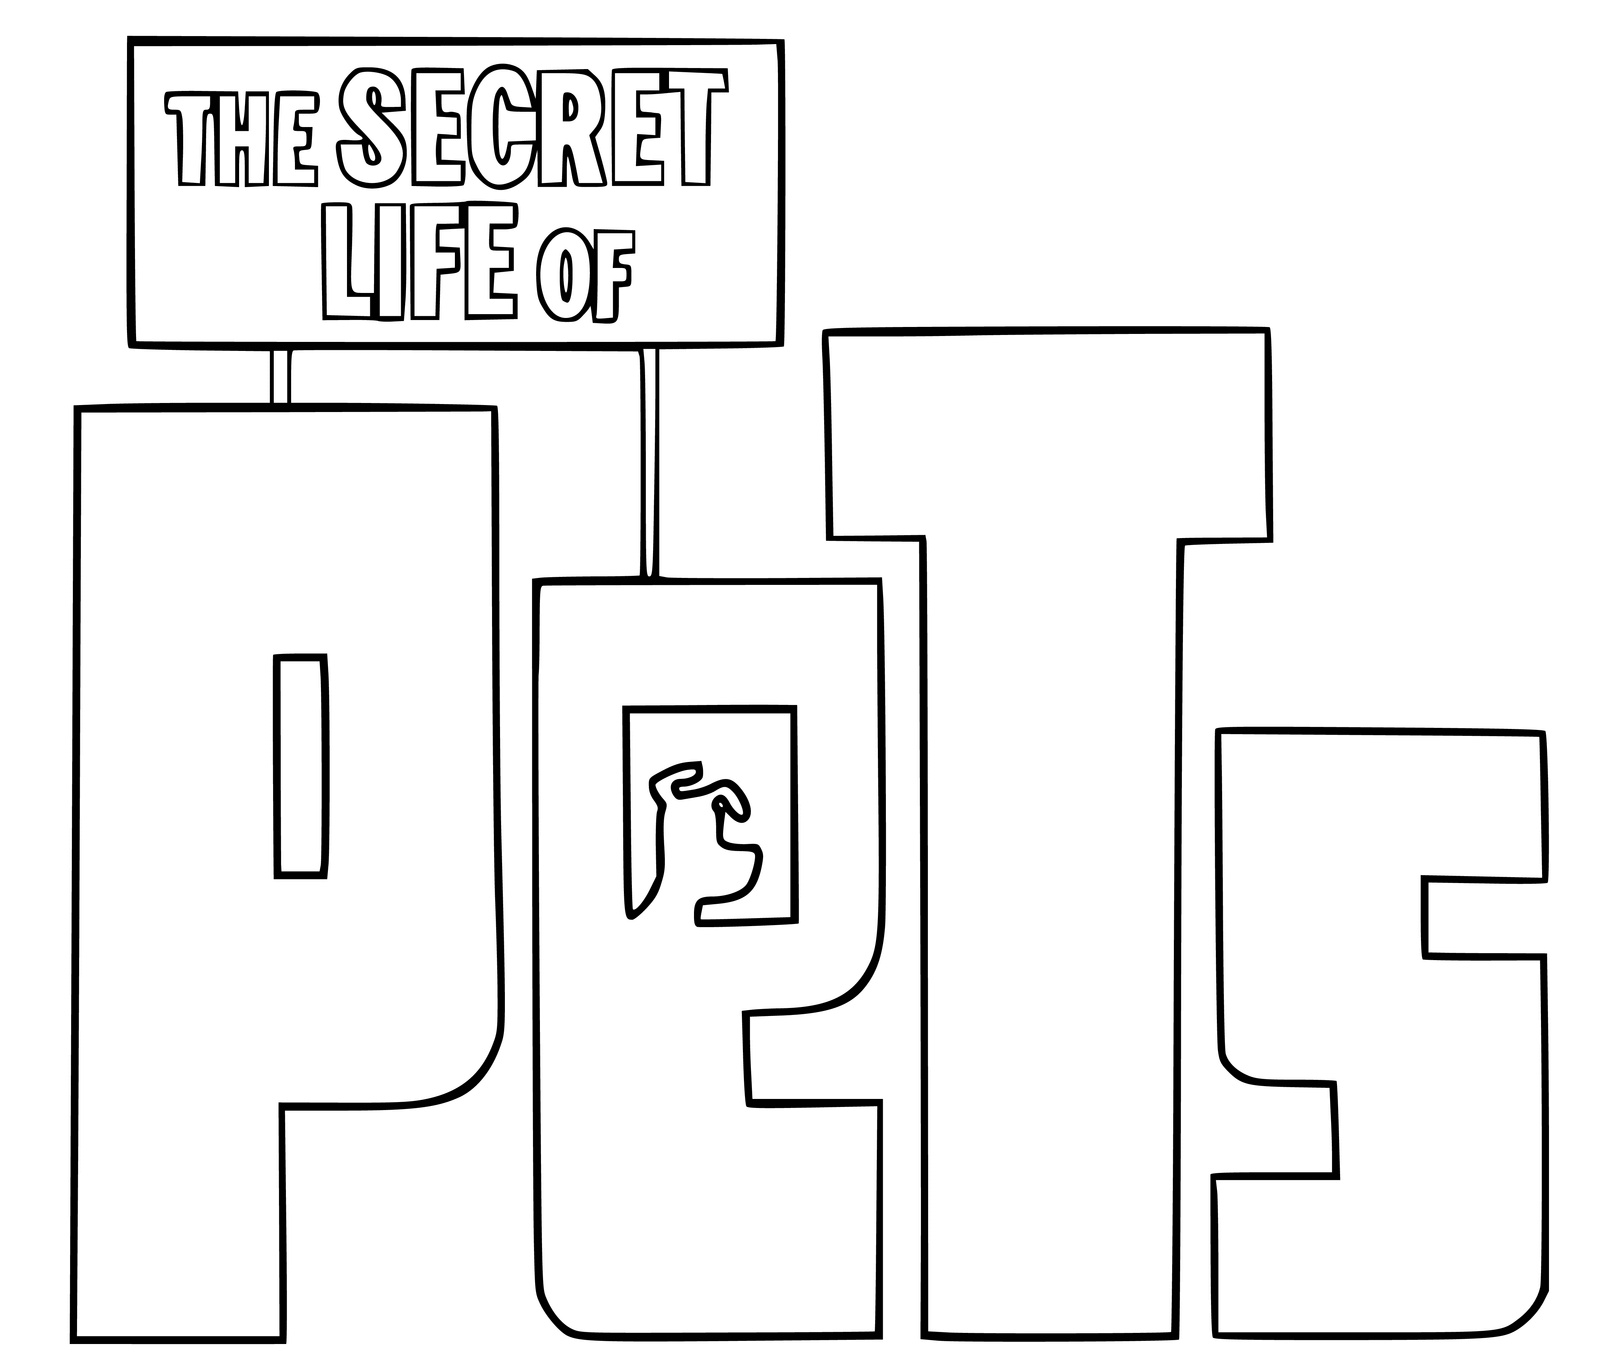 The Secret Life Of Pets Coloring Pages Best Coloring Pages For Kids